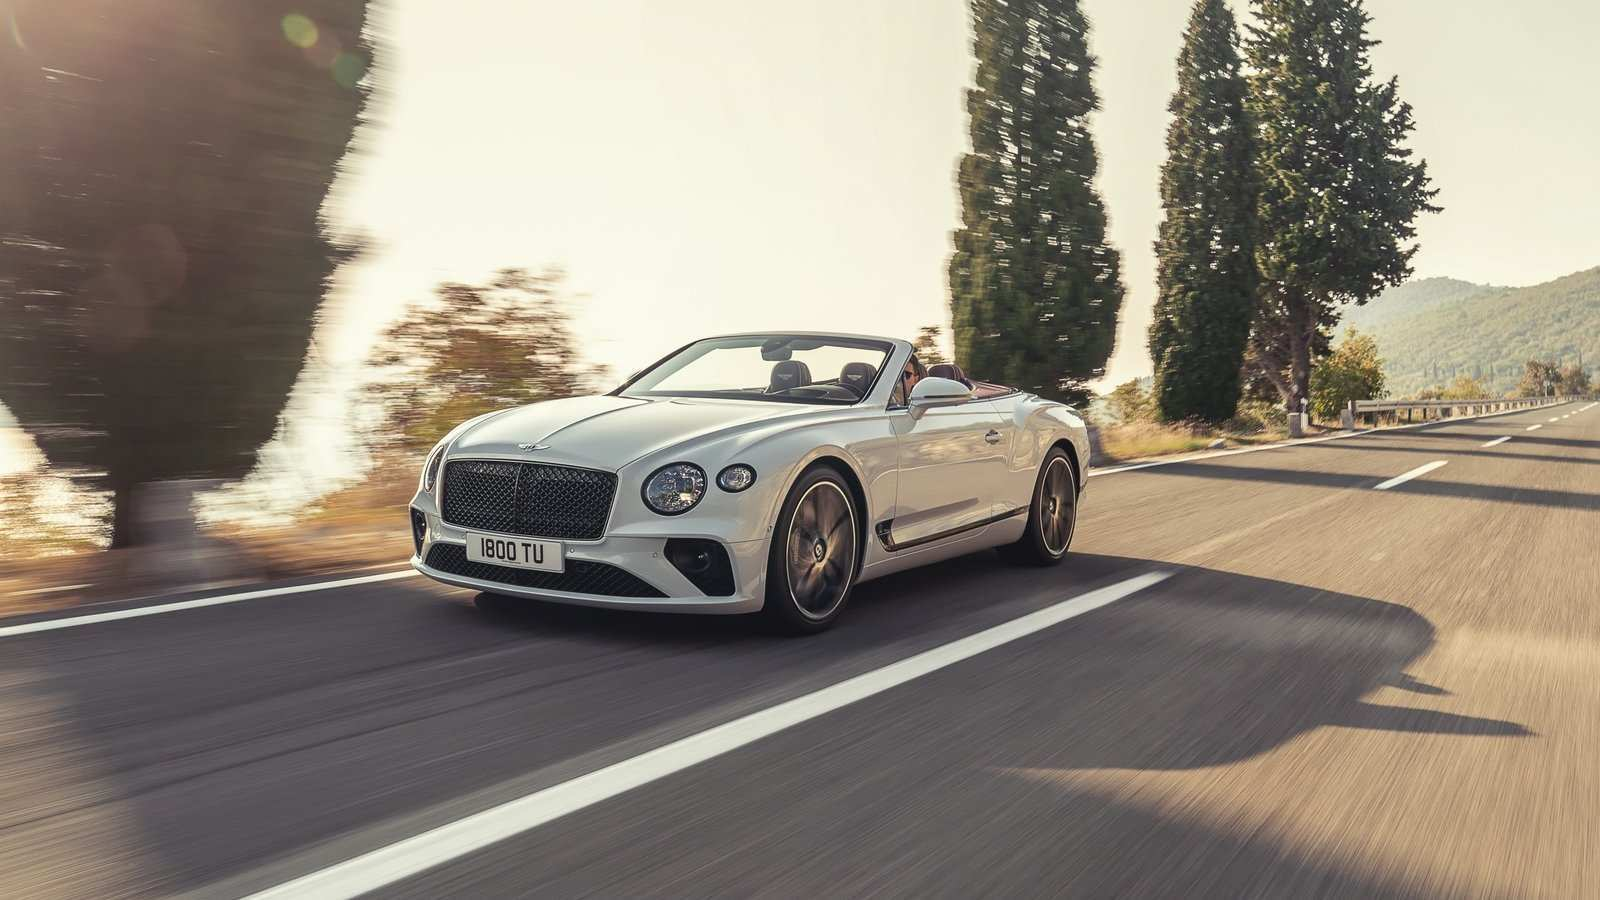 39 Gallery of 2020 Bentley Gtc Redesign and Concept for 2020 Bentley Gtc